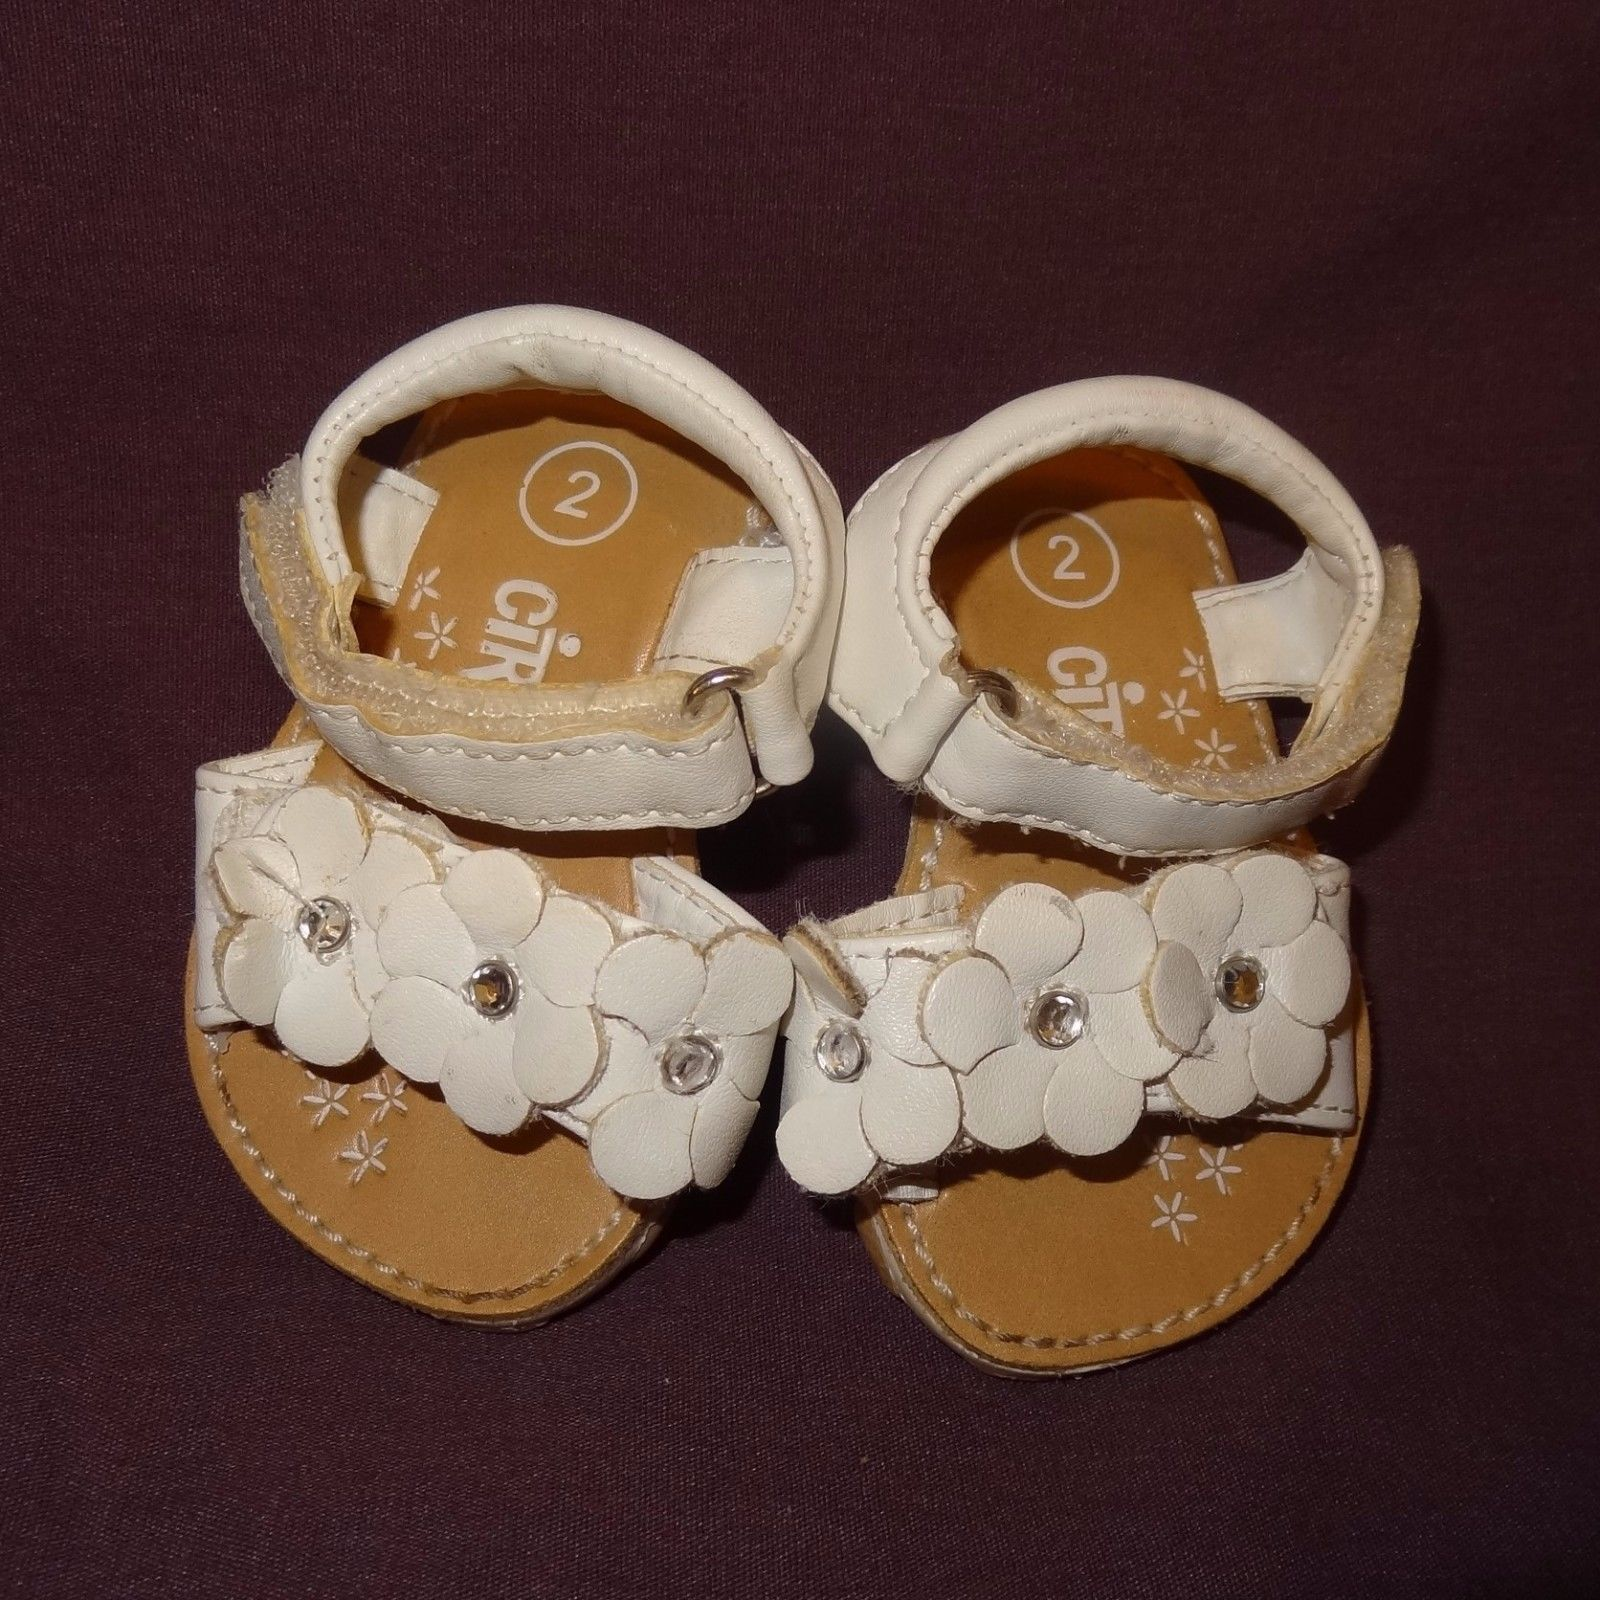 90bac472158 Sandals Shoes White Size 2 or 6 - 9 Months and 50 similar items